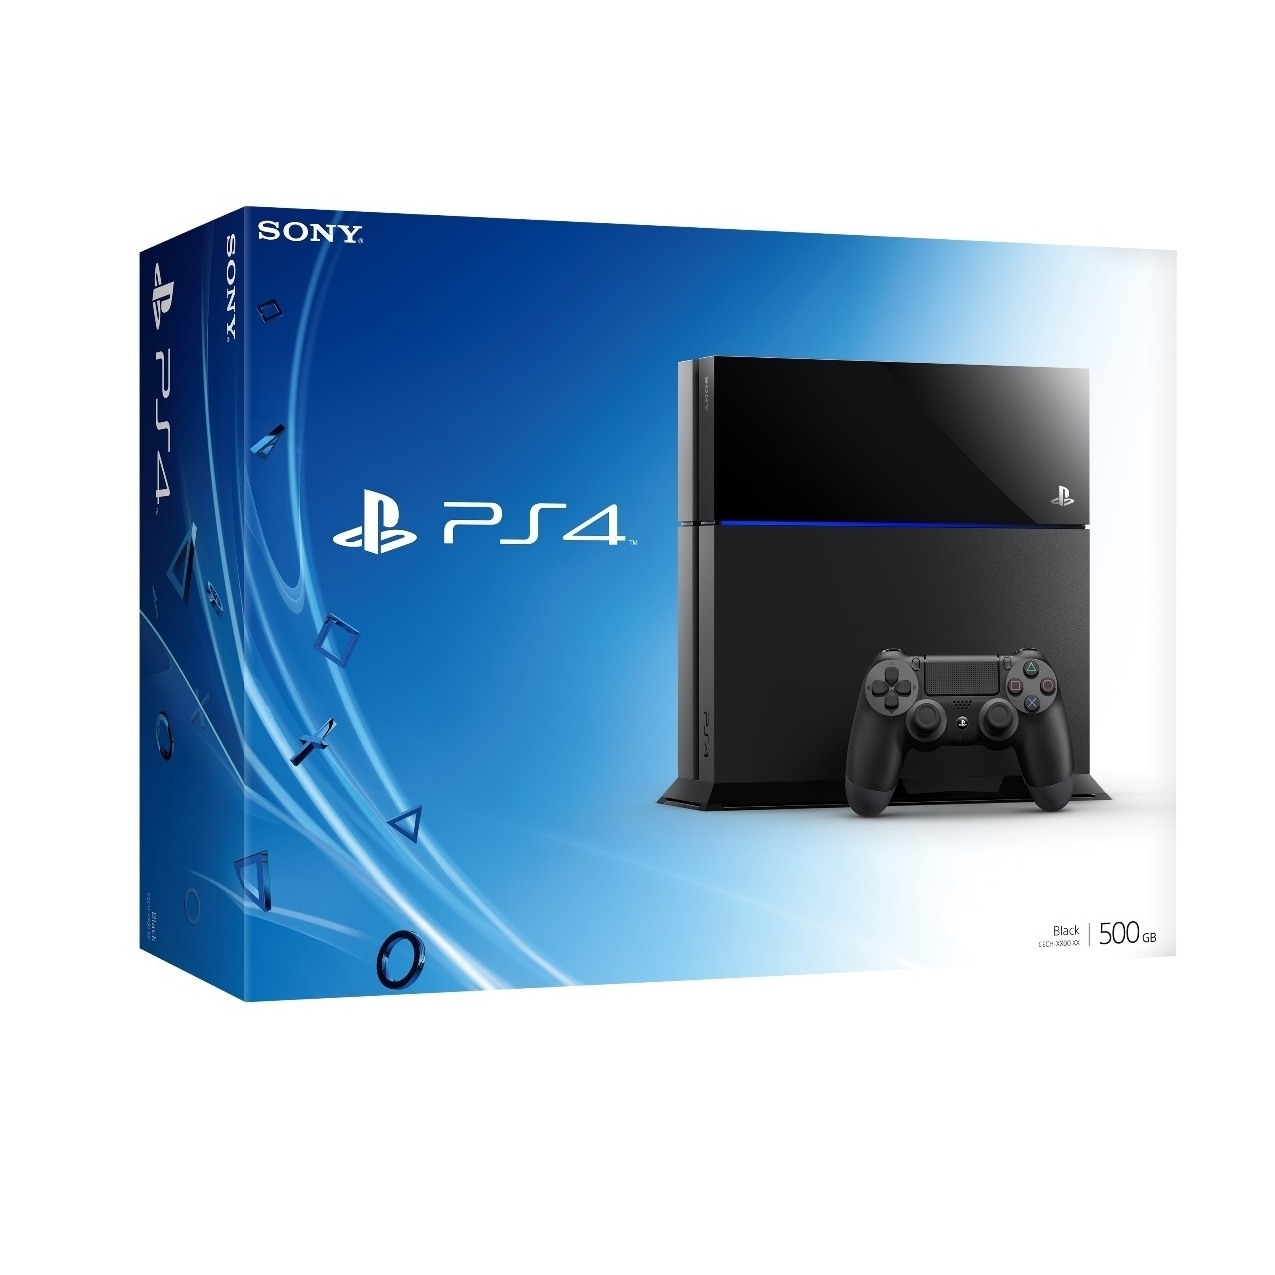 ps4 deals at amazon